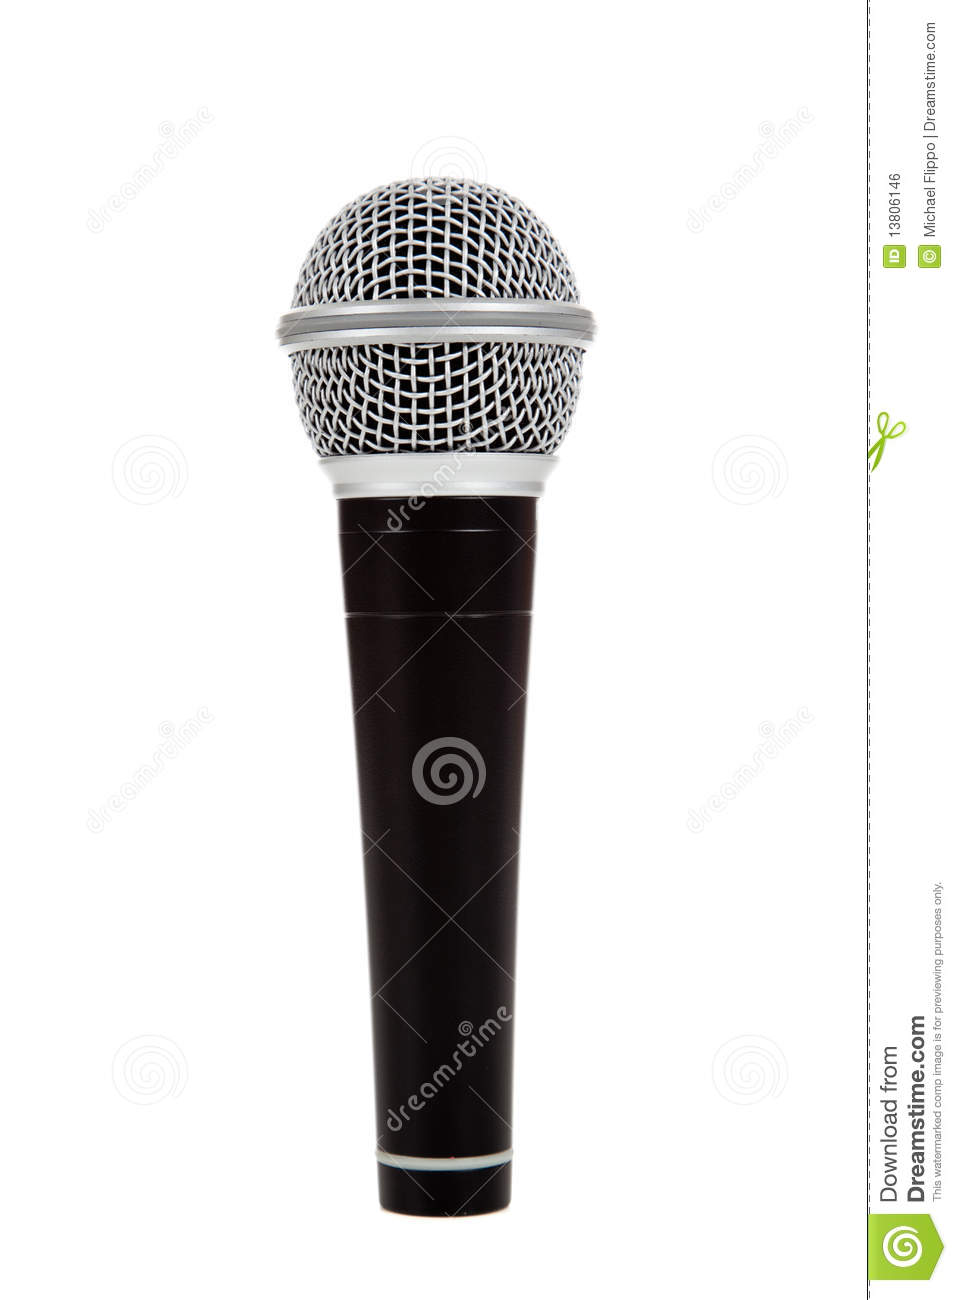 Black And Silver Microphone On A White Background Stock ...